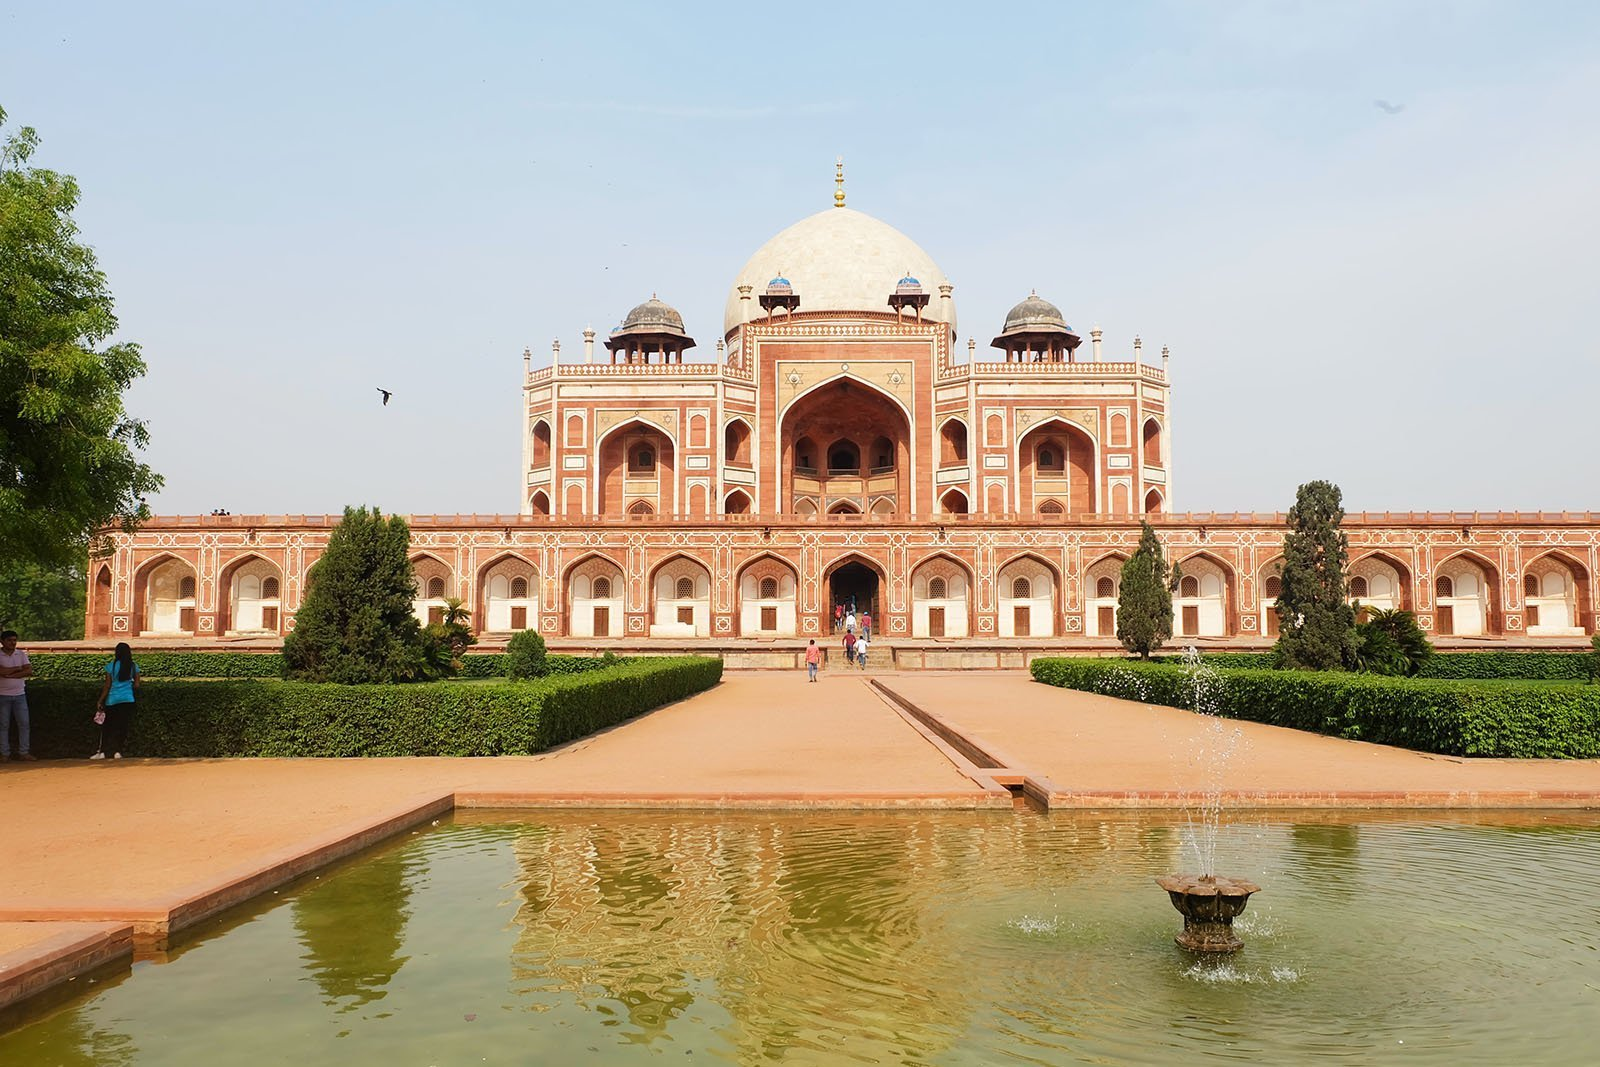 Experience Incredible India With The Top 5 Things to Do in New Delhi